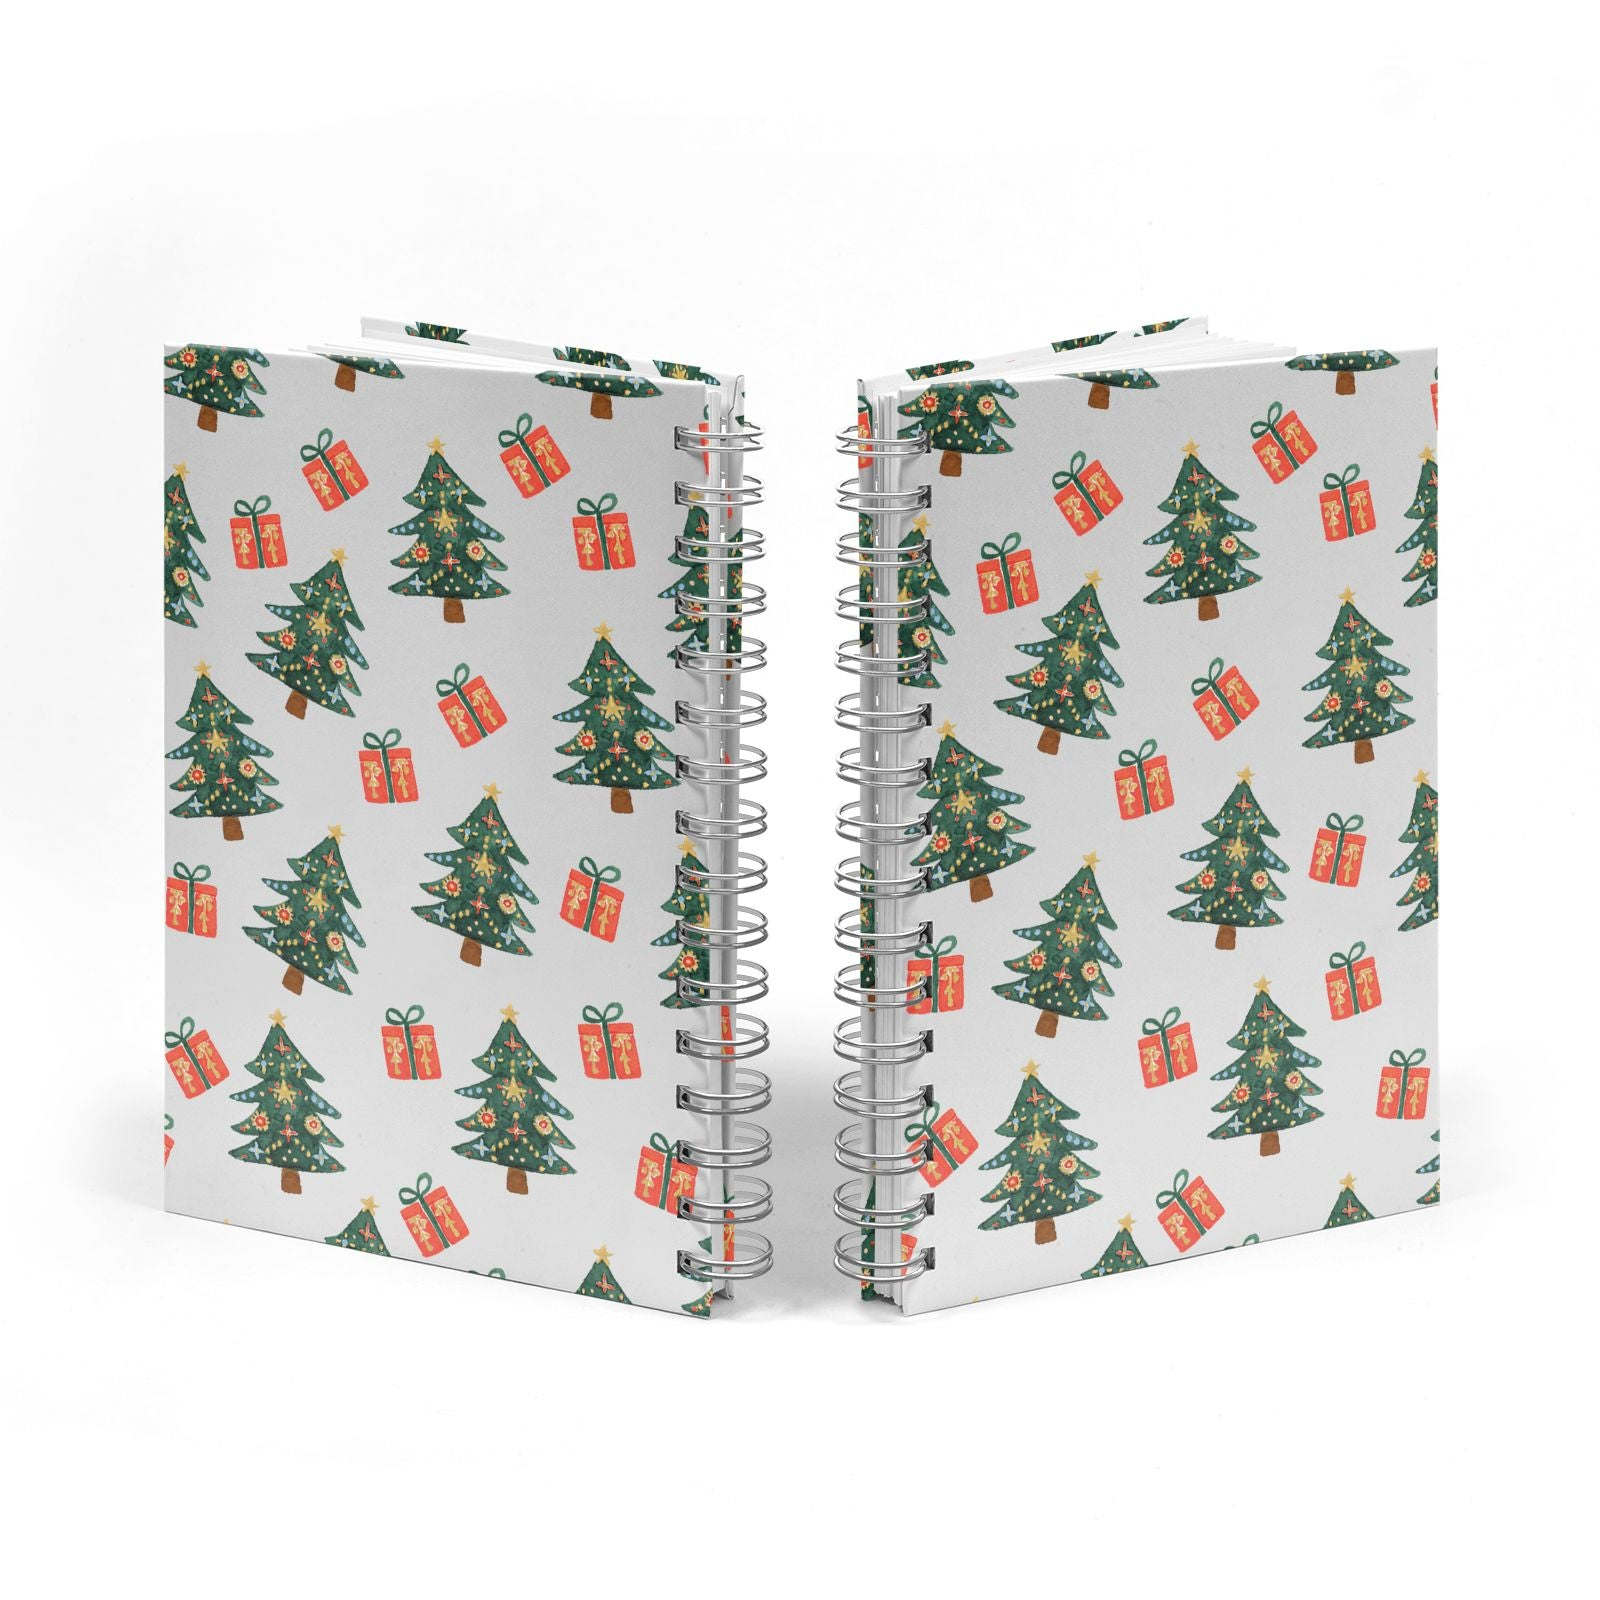 Christmas tree and presents Notebook with Silver Coil Spine View